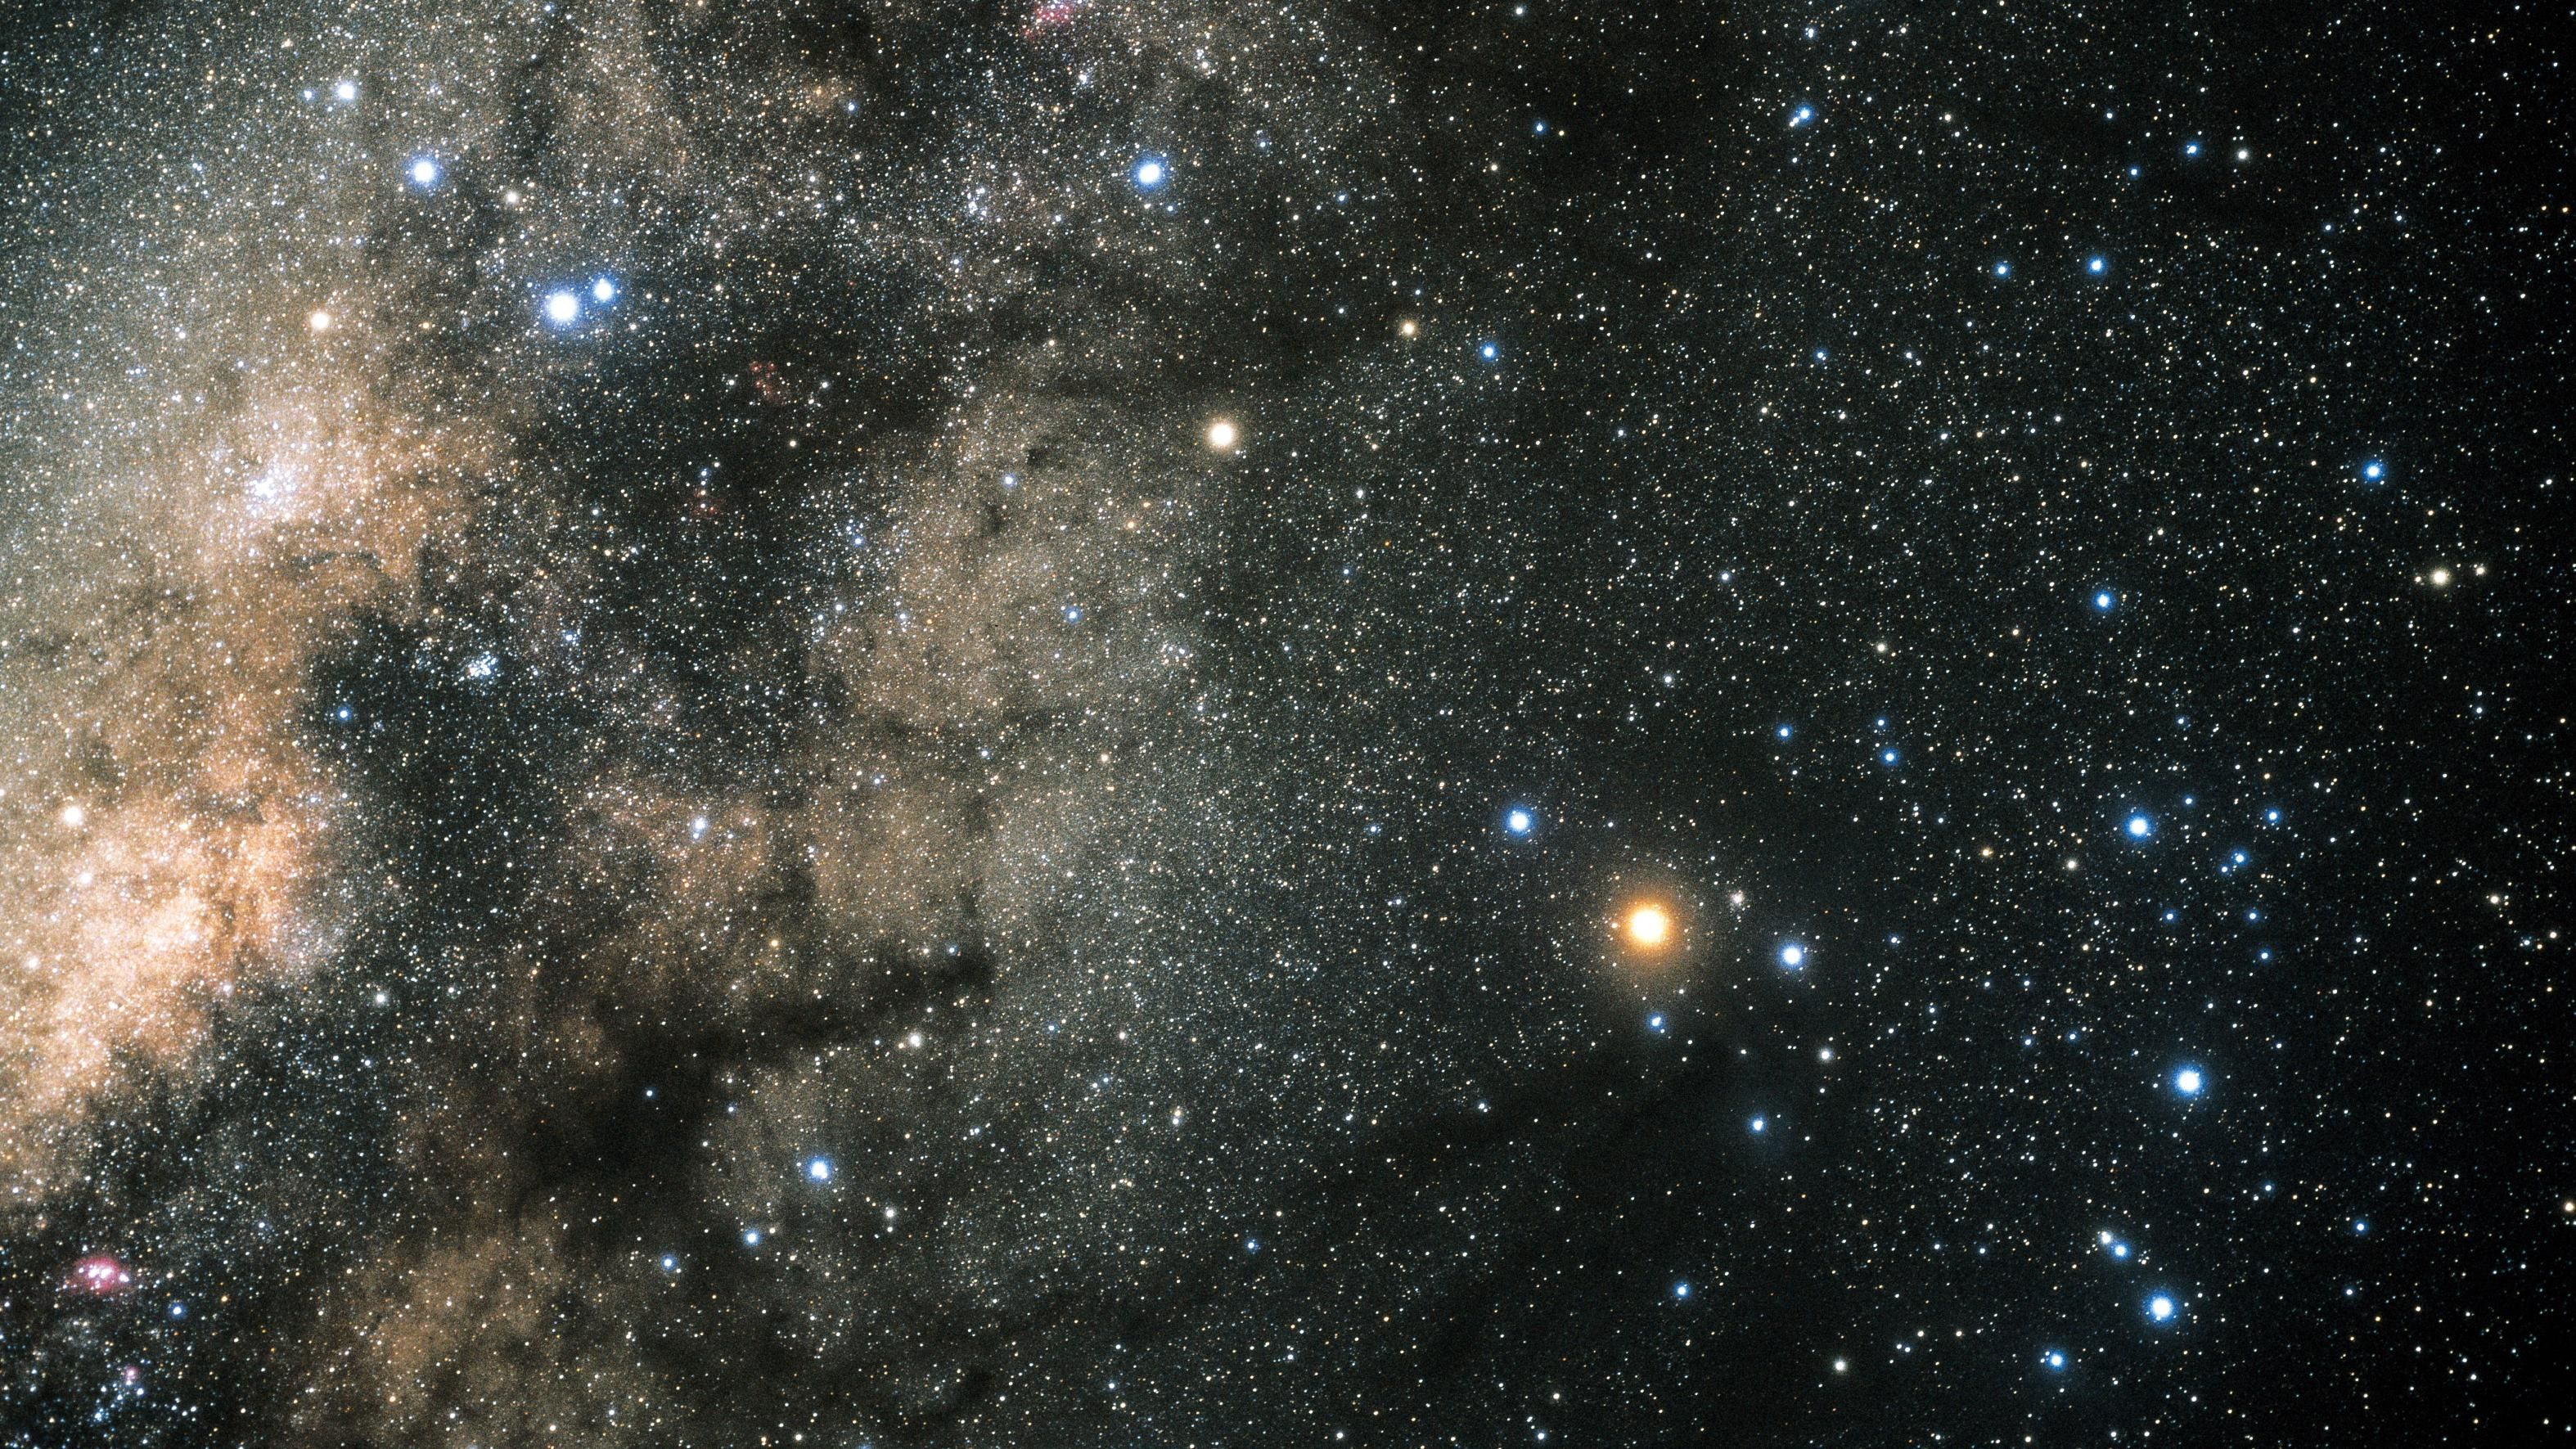 Star field of Constellation Scorpius Desktop Wallpaper